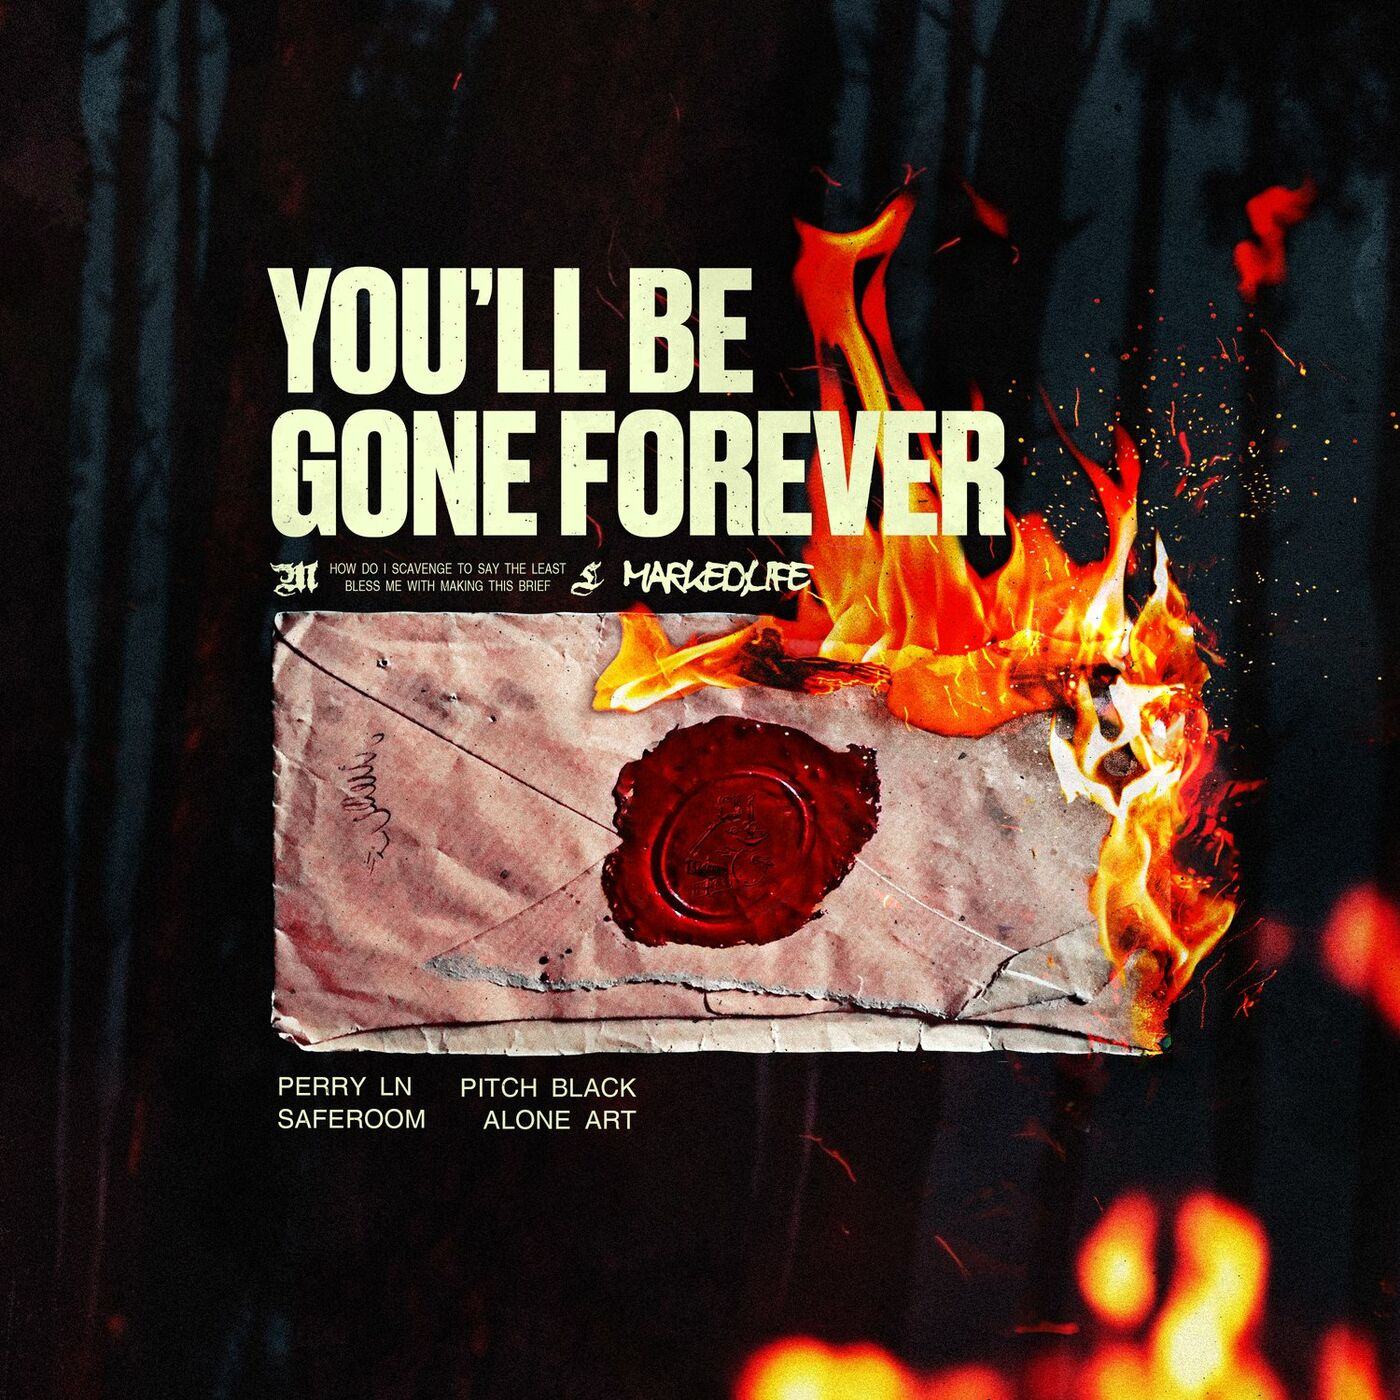 Marked;Life - You'll Be Gone Forever [EP] (2020)